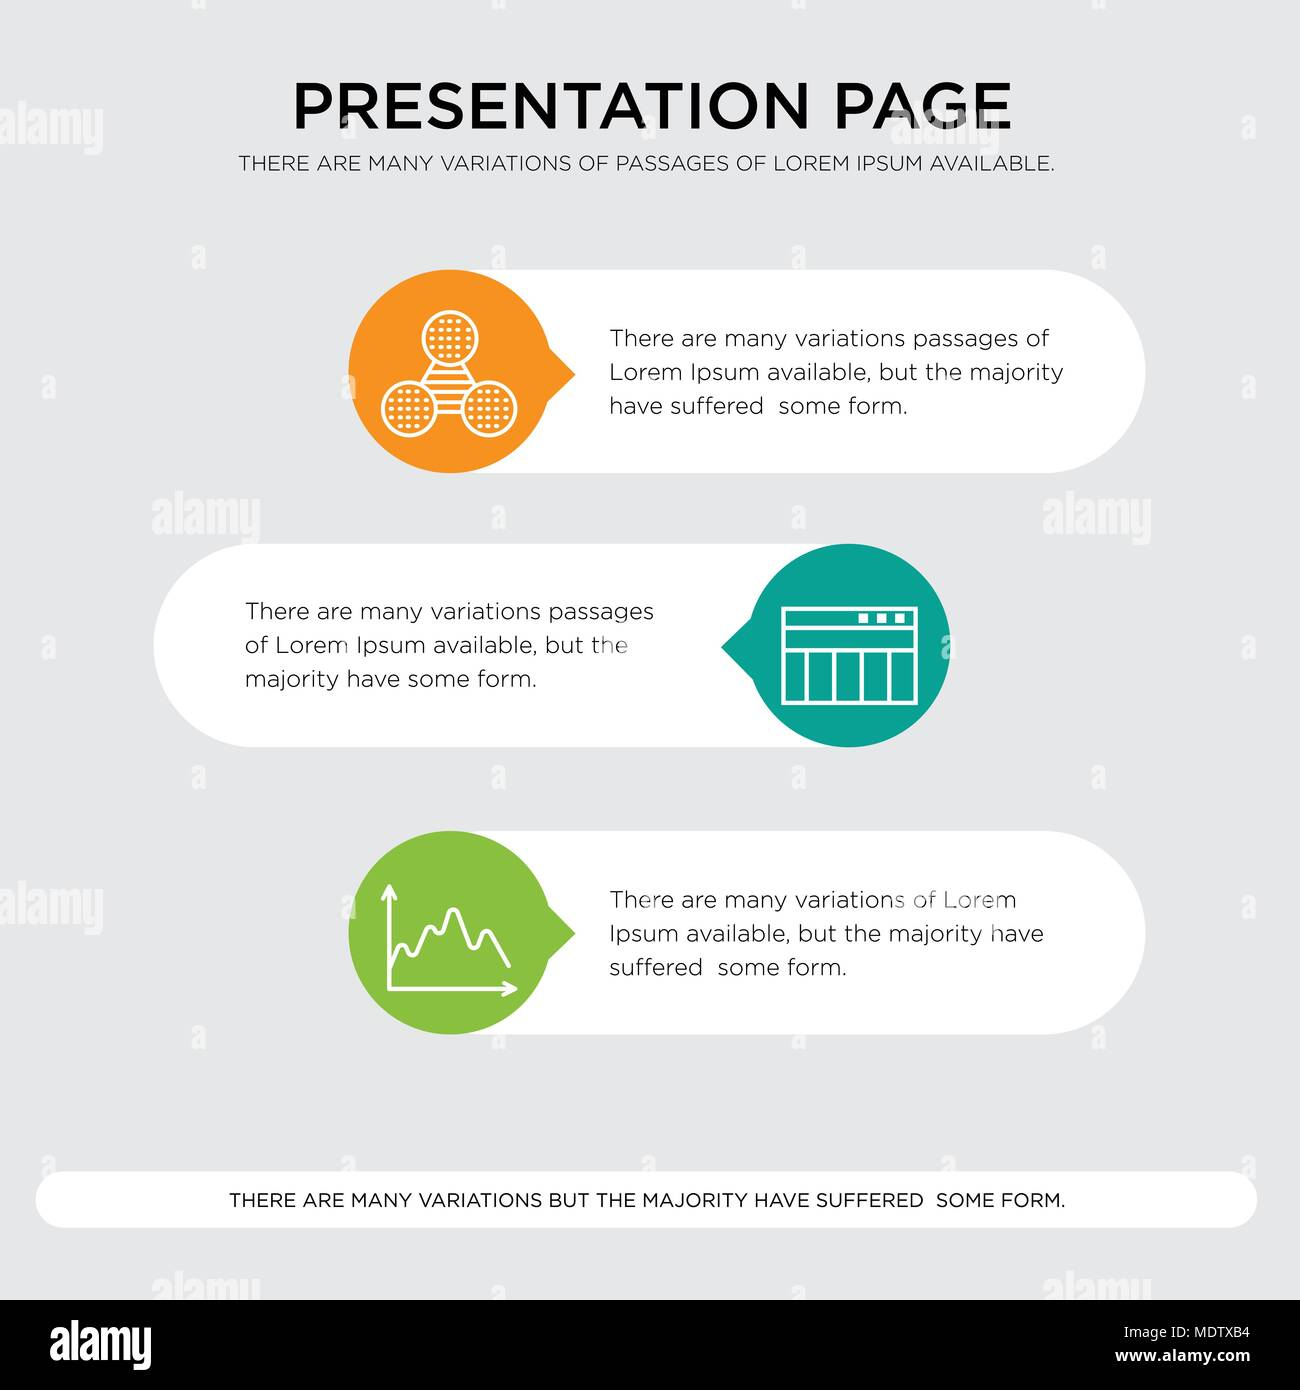 Data, Table for data, Pie graphic comparison presentation design template in orange, green, yellow colors with horizontal and rounded shapes - Stock Image